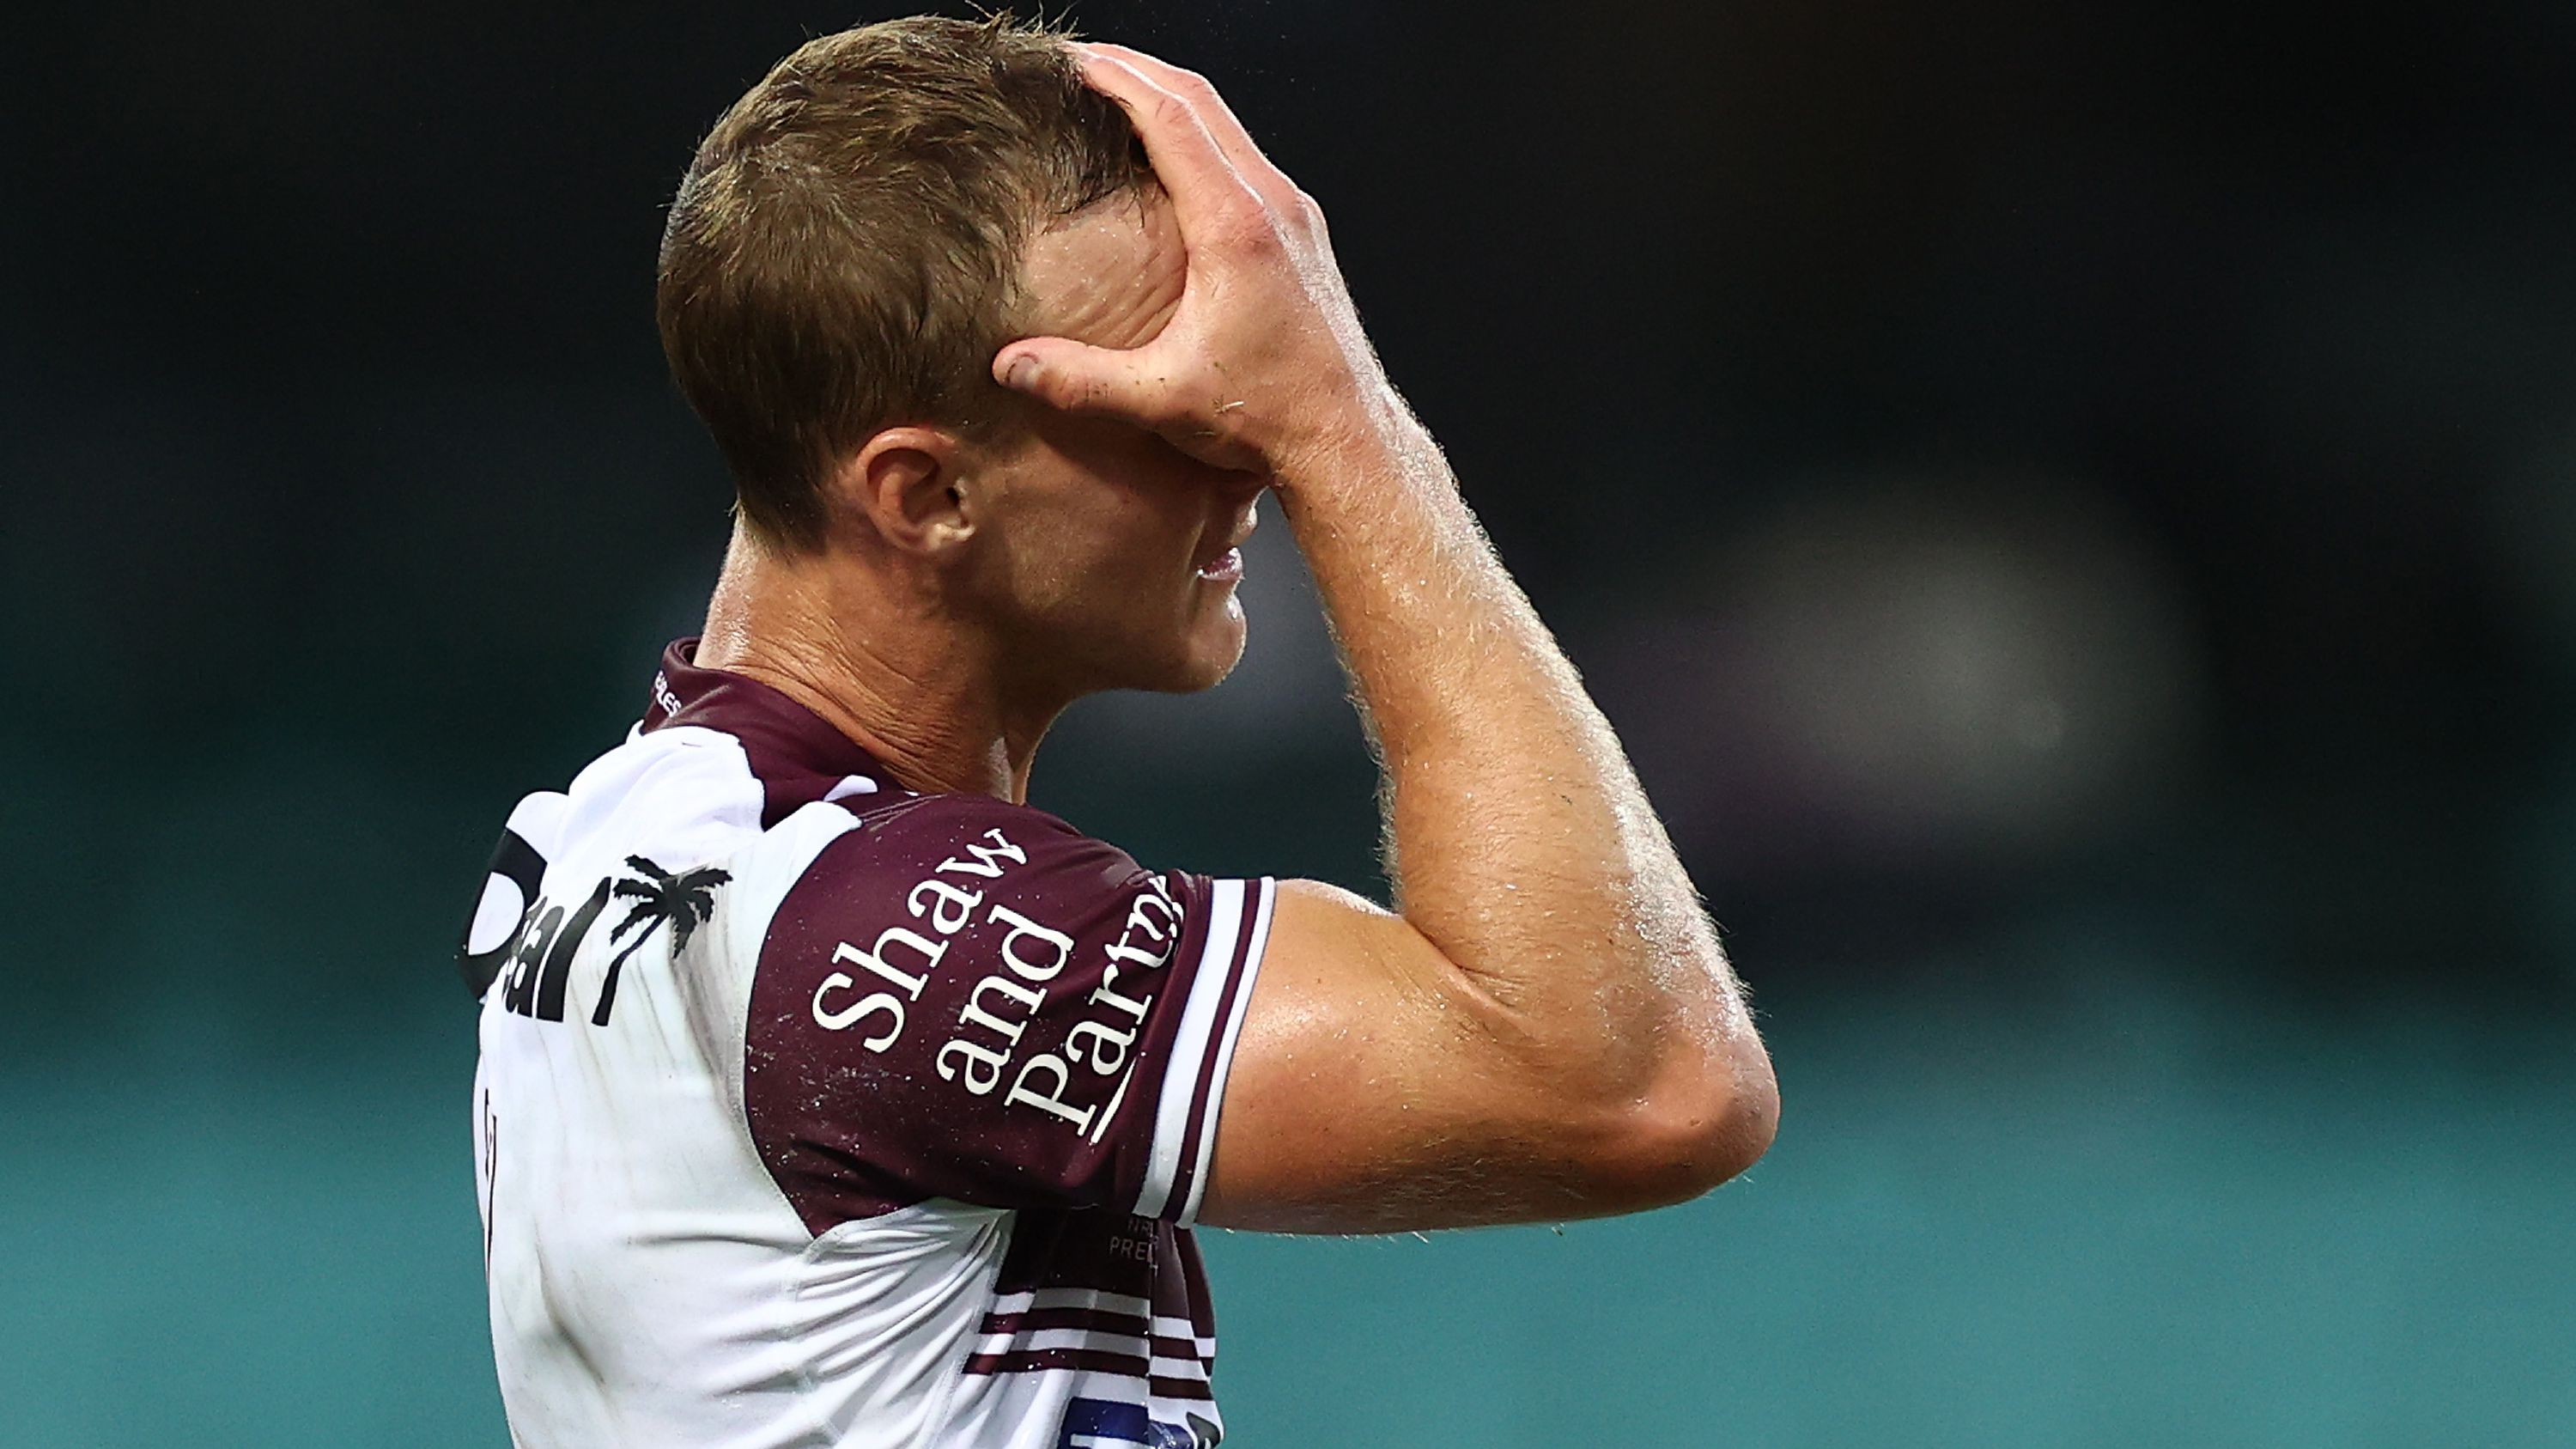 EXCLUSIVE: Brad Fittler questions 'big money' Manly Sea Eagles strategy – Wide World of Sports